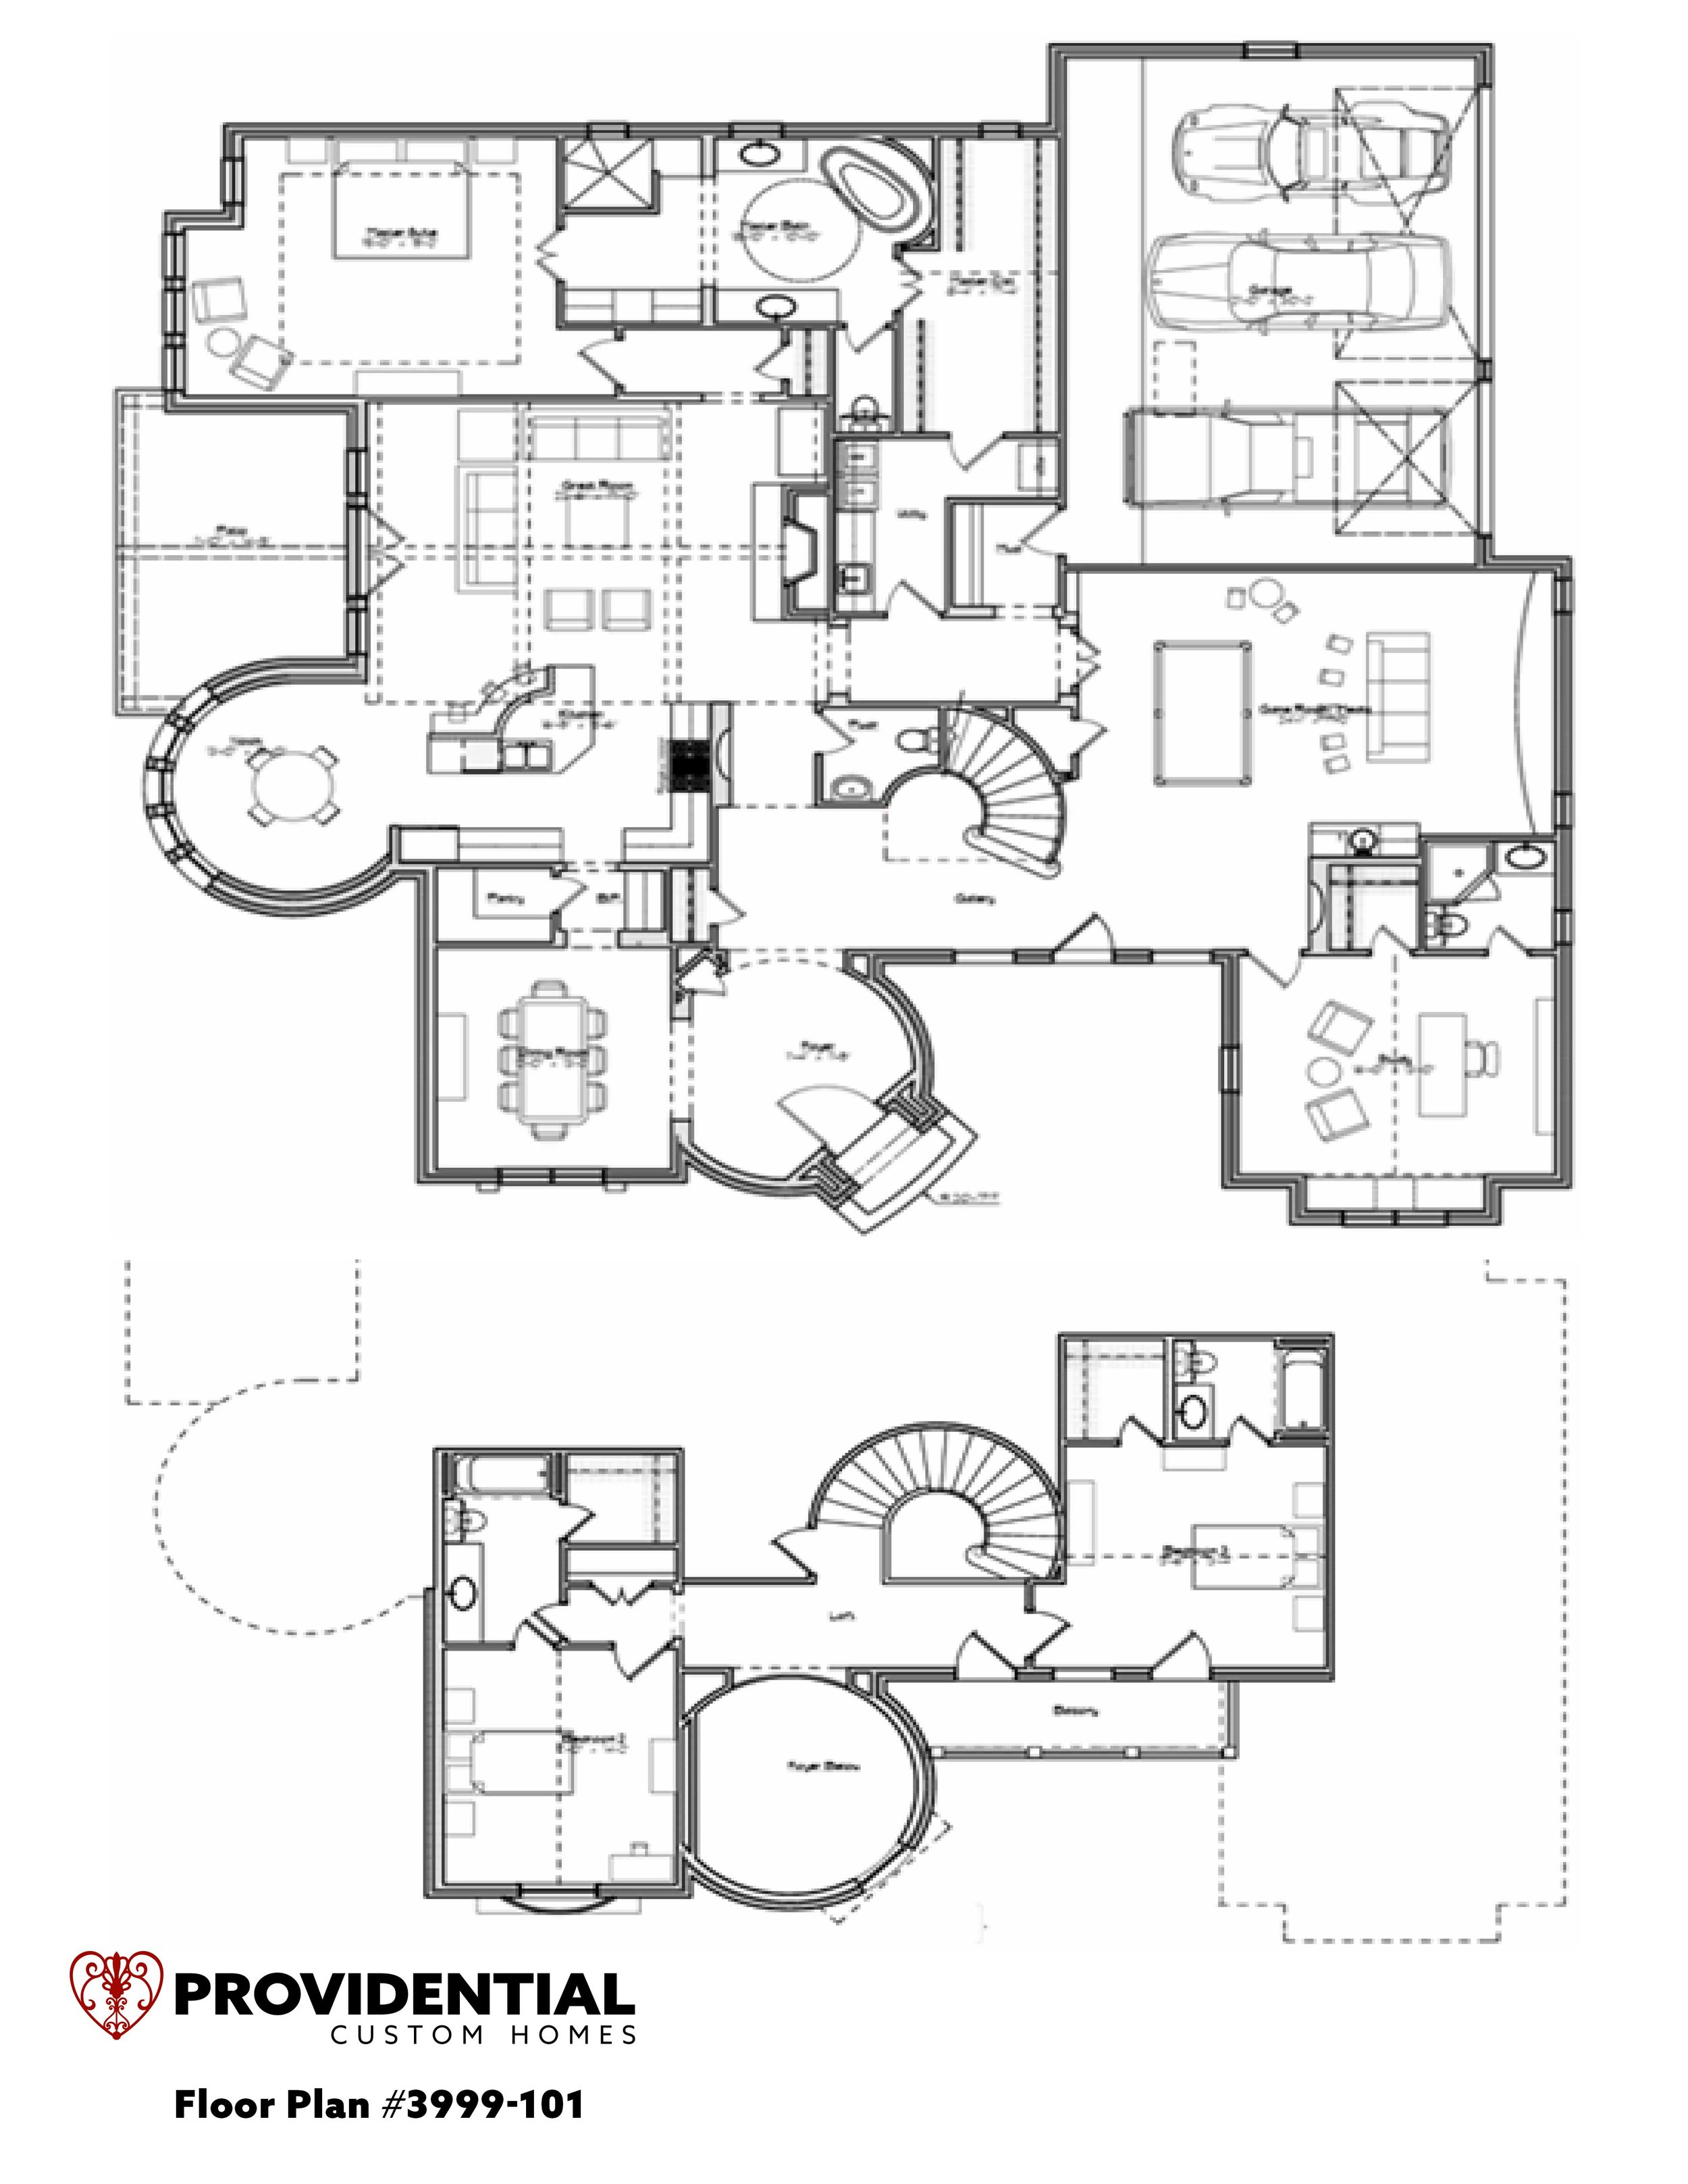 The FLOOR PLAN #3999-101.jpg